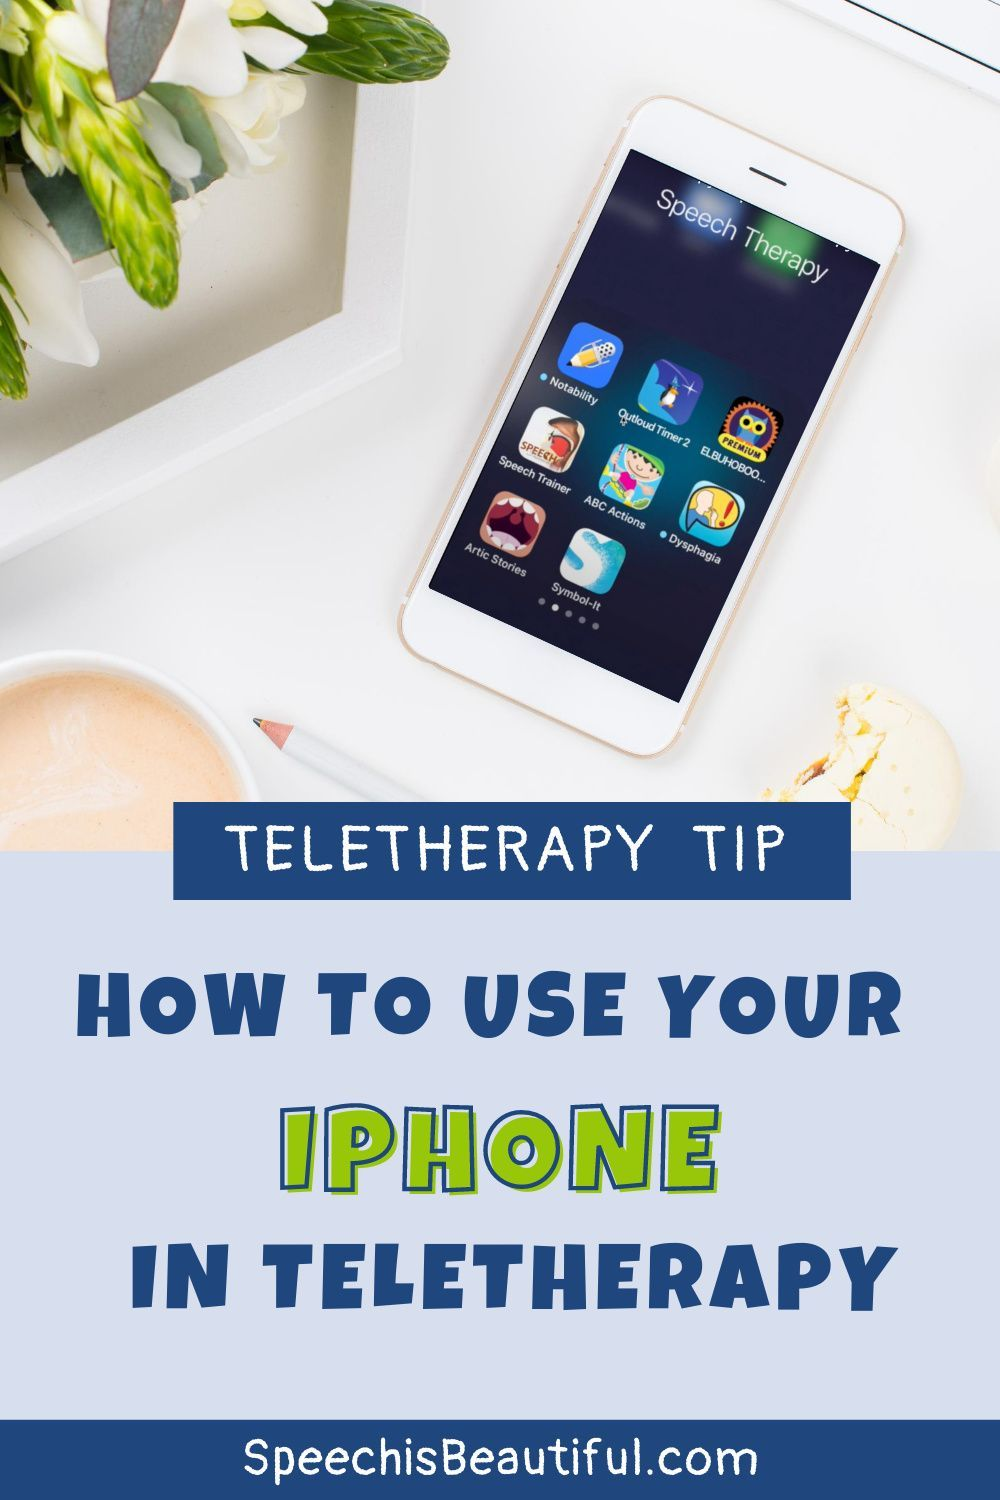 How to Use Your iPhone in Teletherapy Speech is